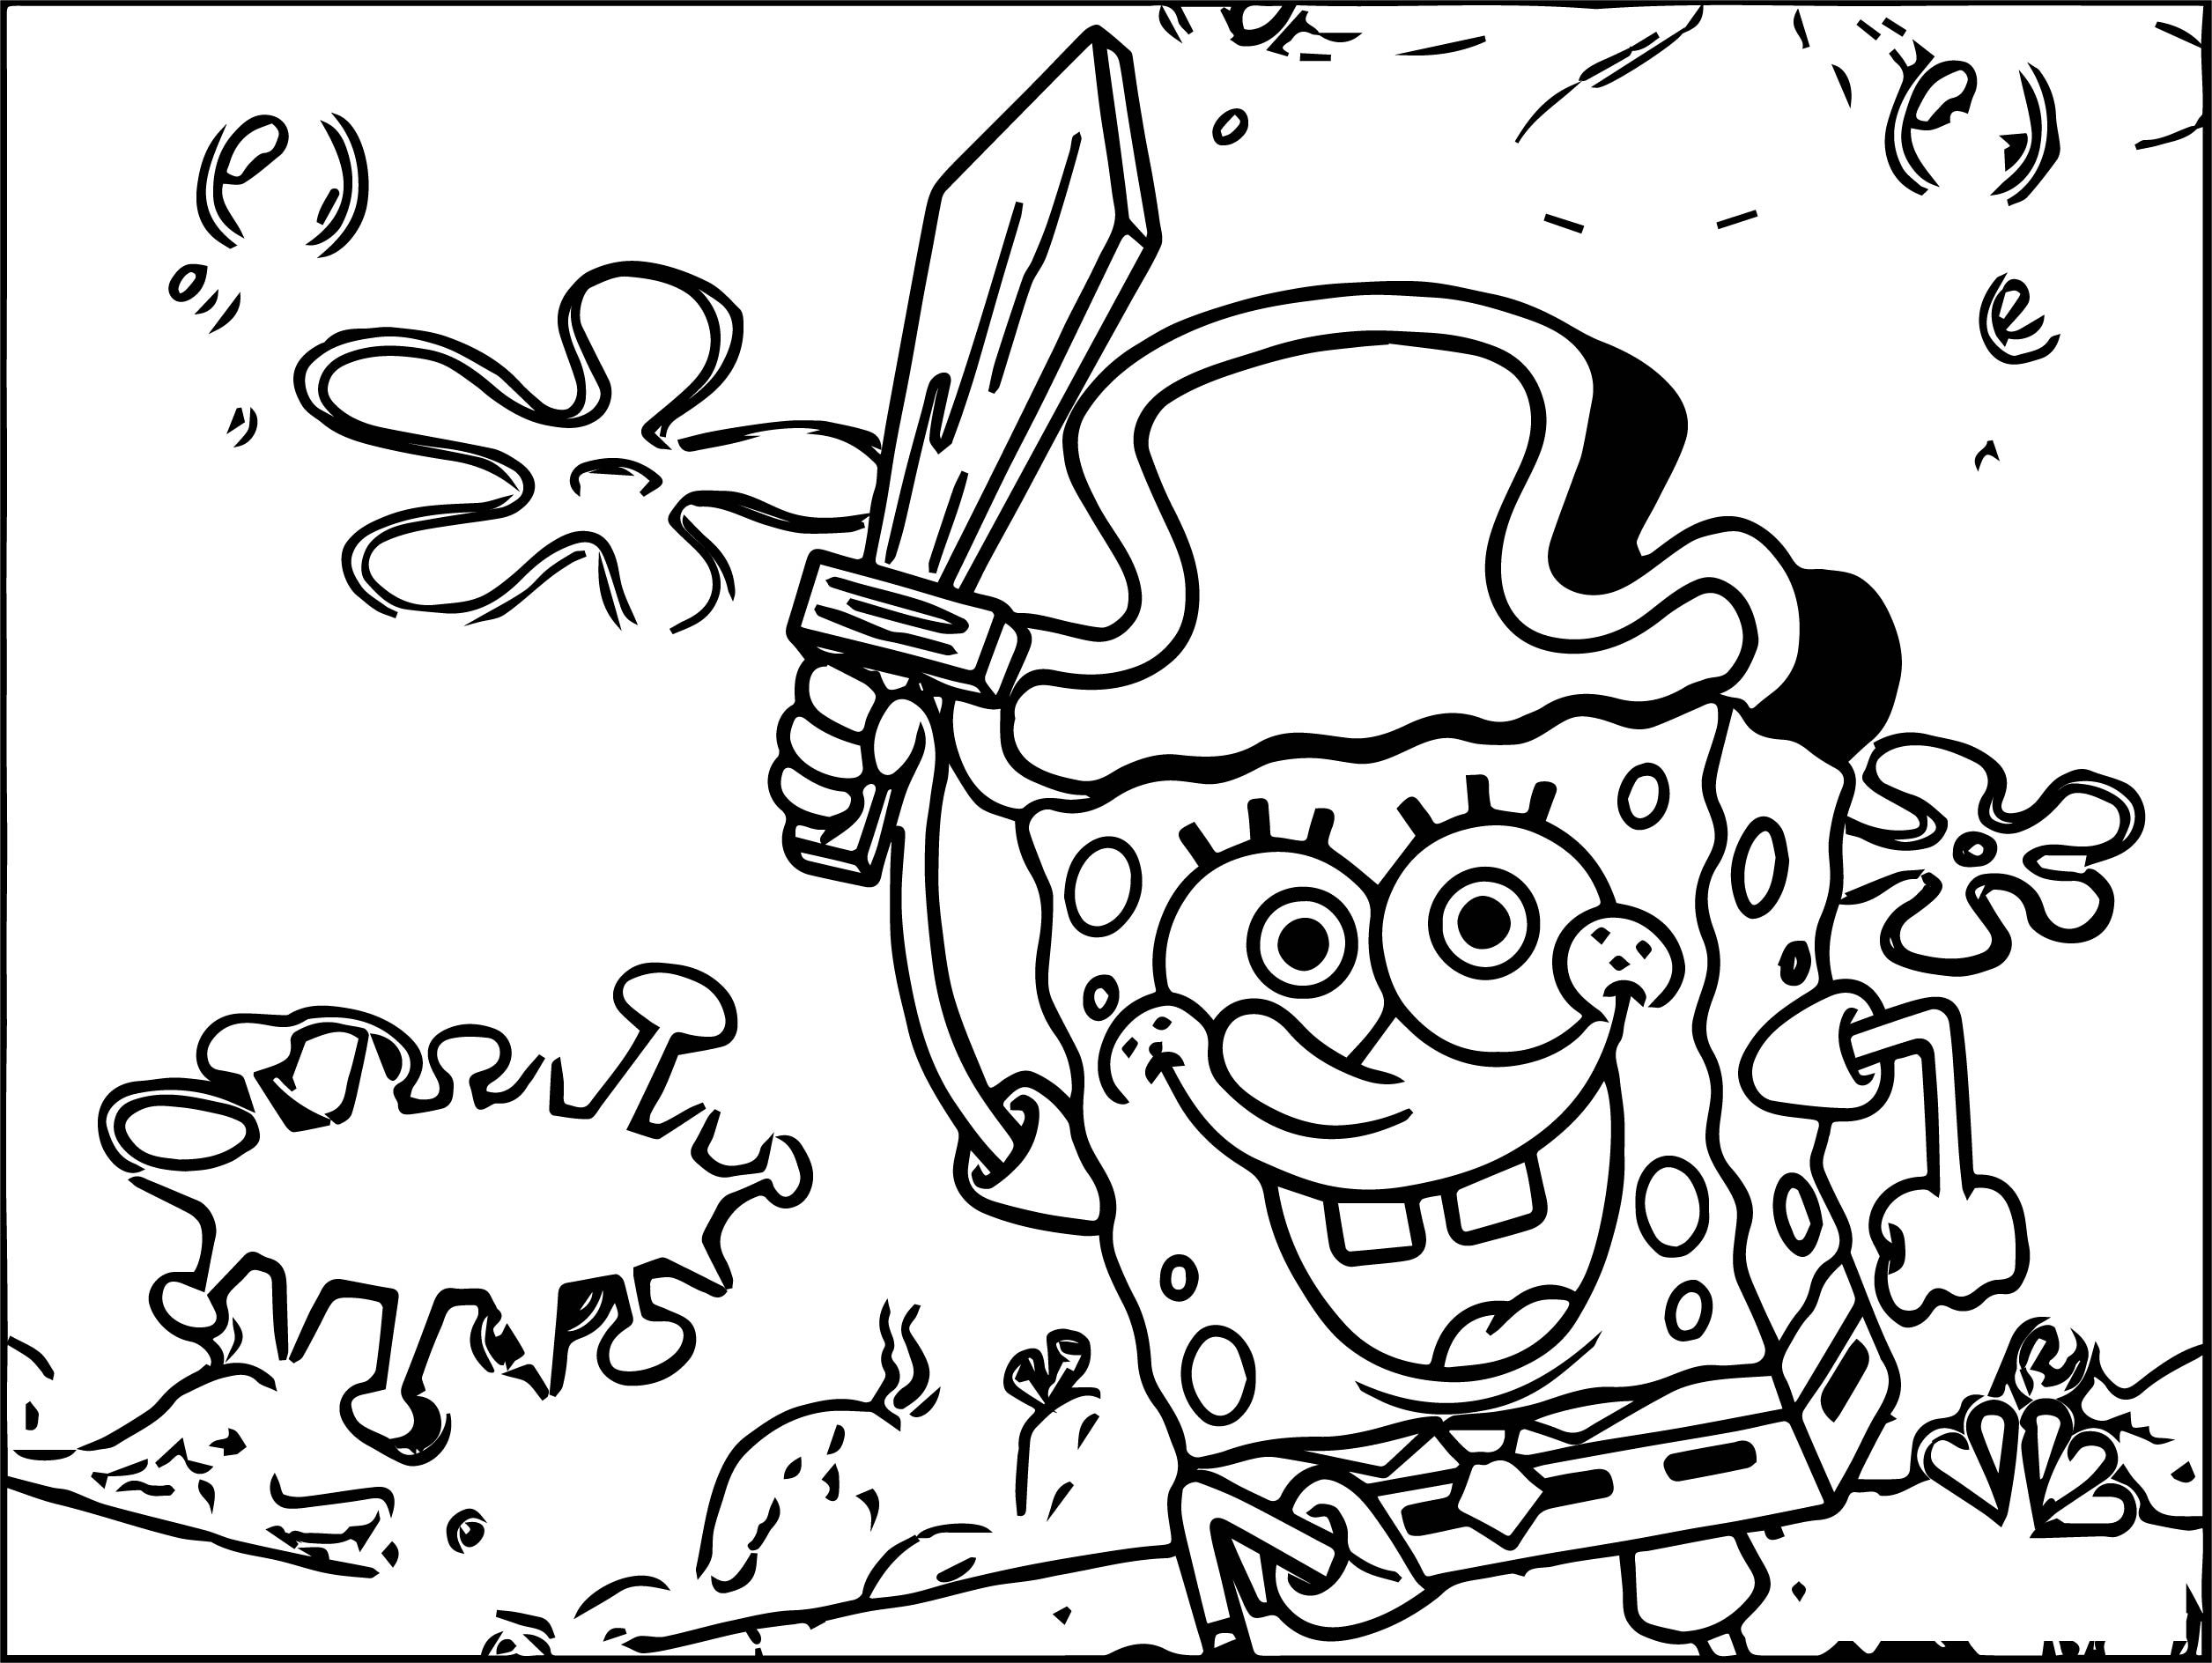 Square Pants Nickelodeon Coloring Page